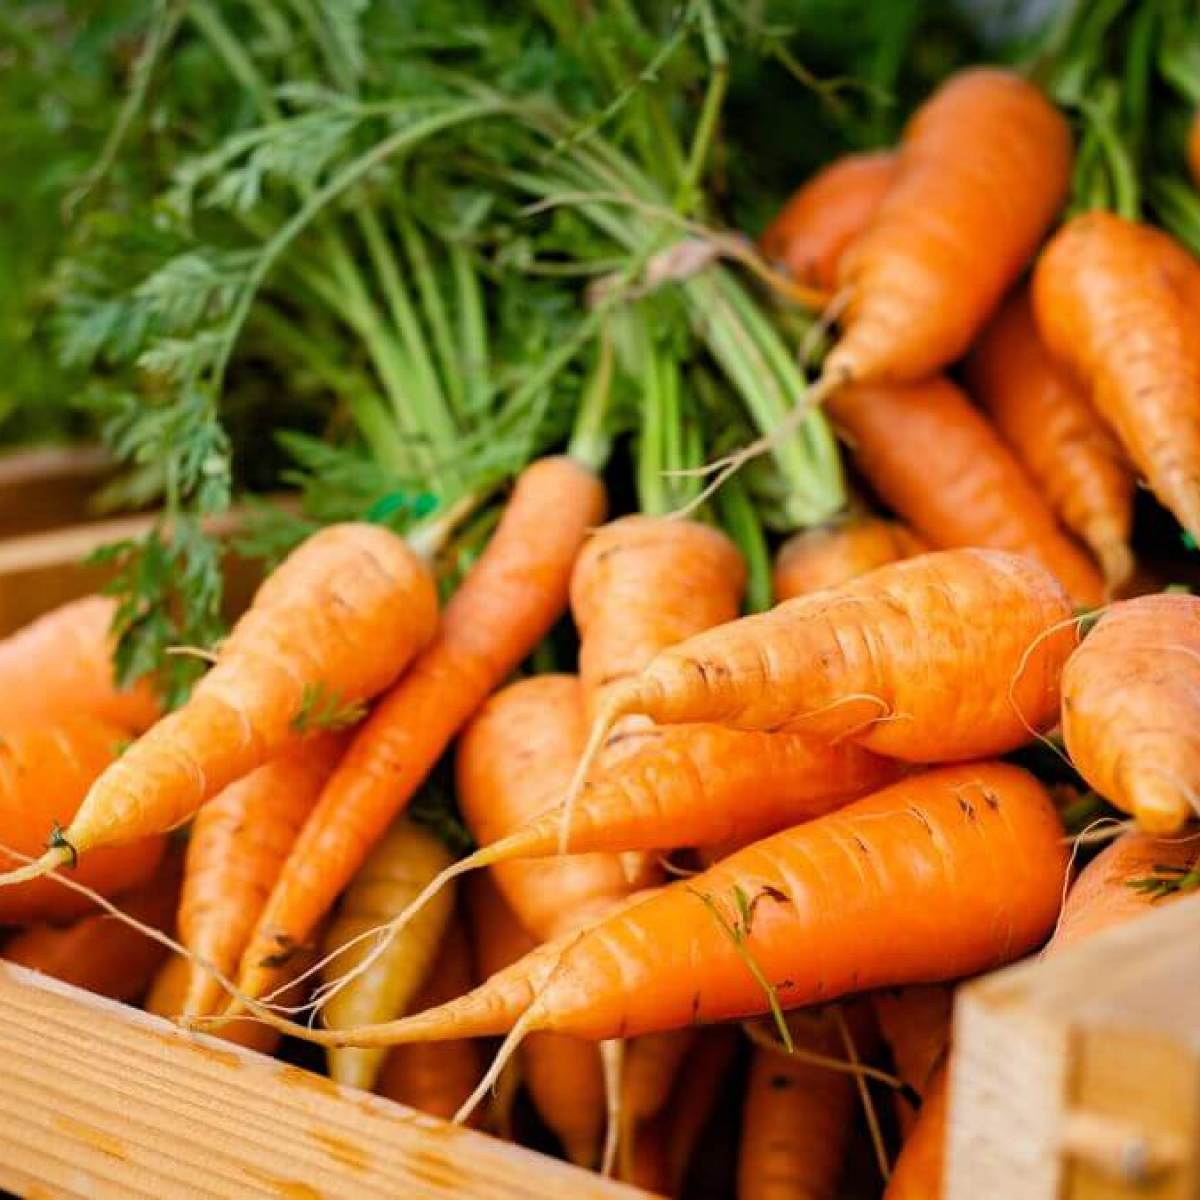 Carrots in a wooden box